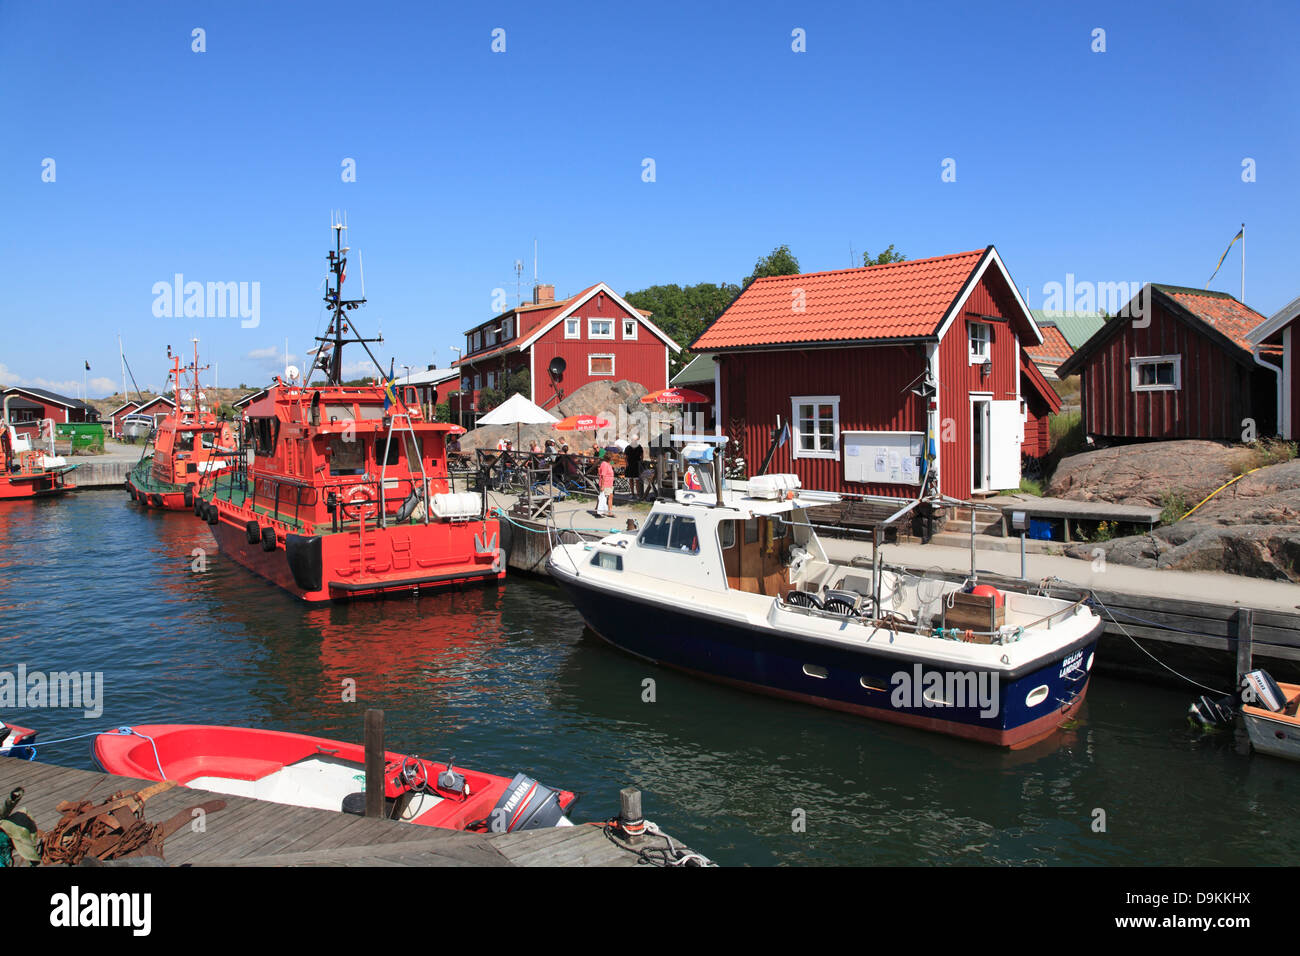 Pilot boat in the harbor of Landsort Island (Oeja), harbor, Stockholm Archipelago, baltic sea coast, Sweden, Scandinavia - Stock Image